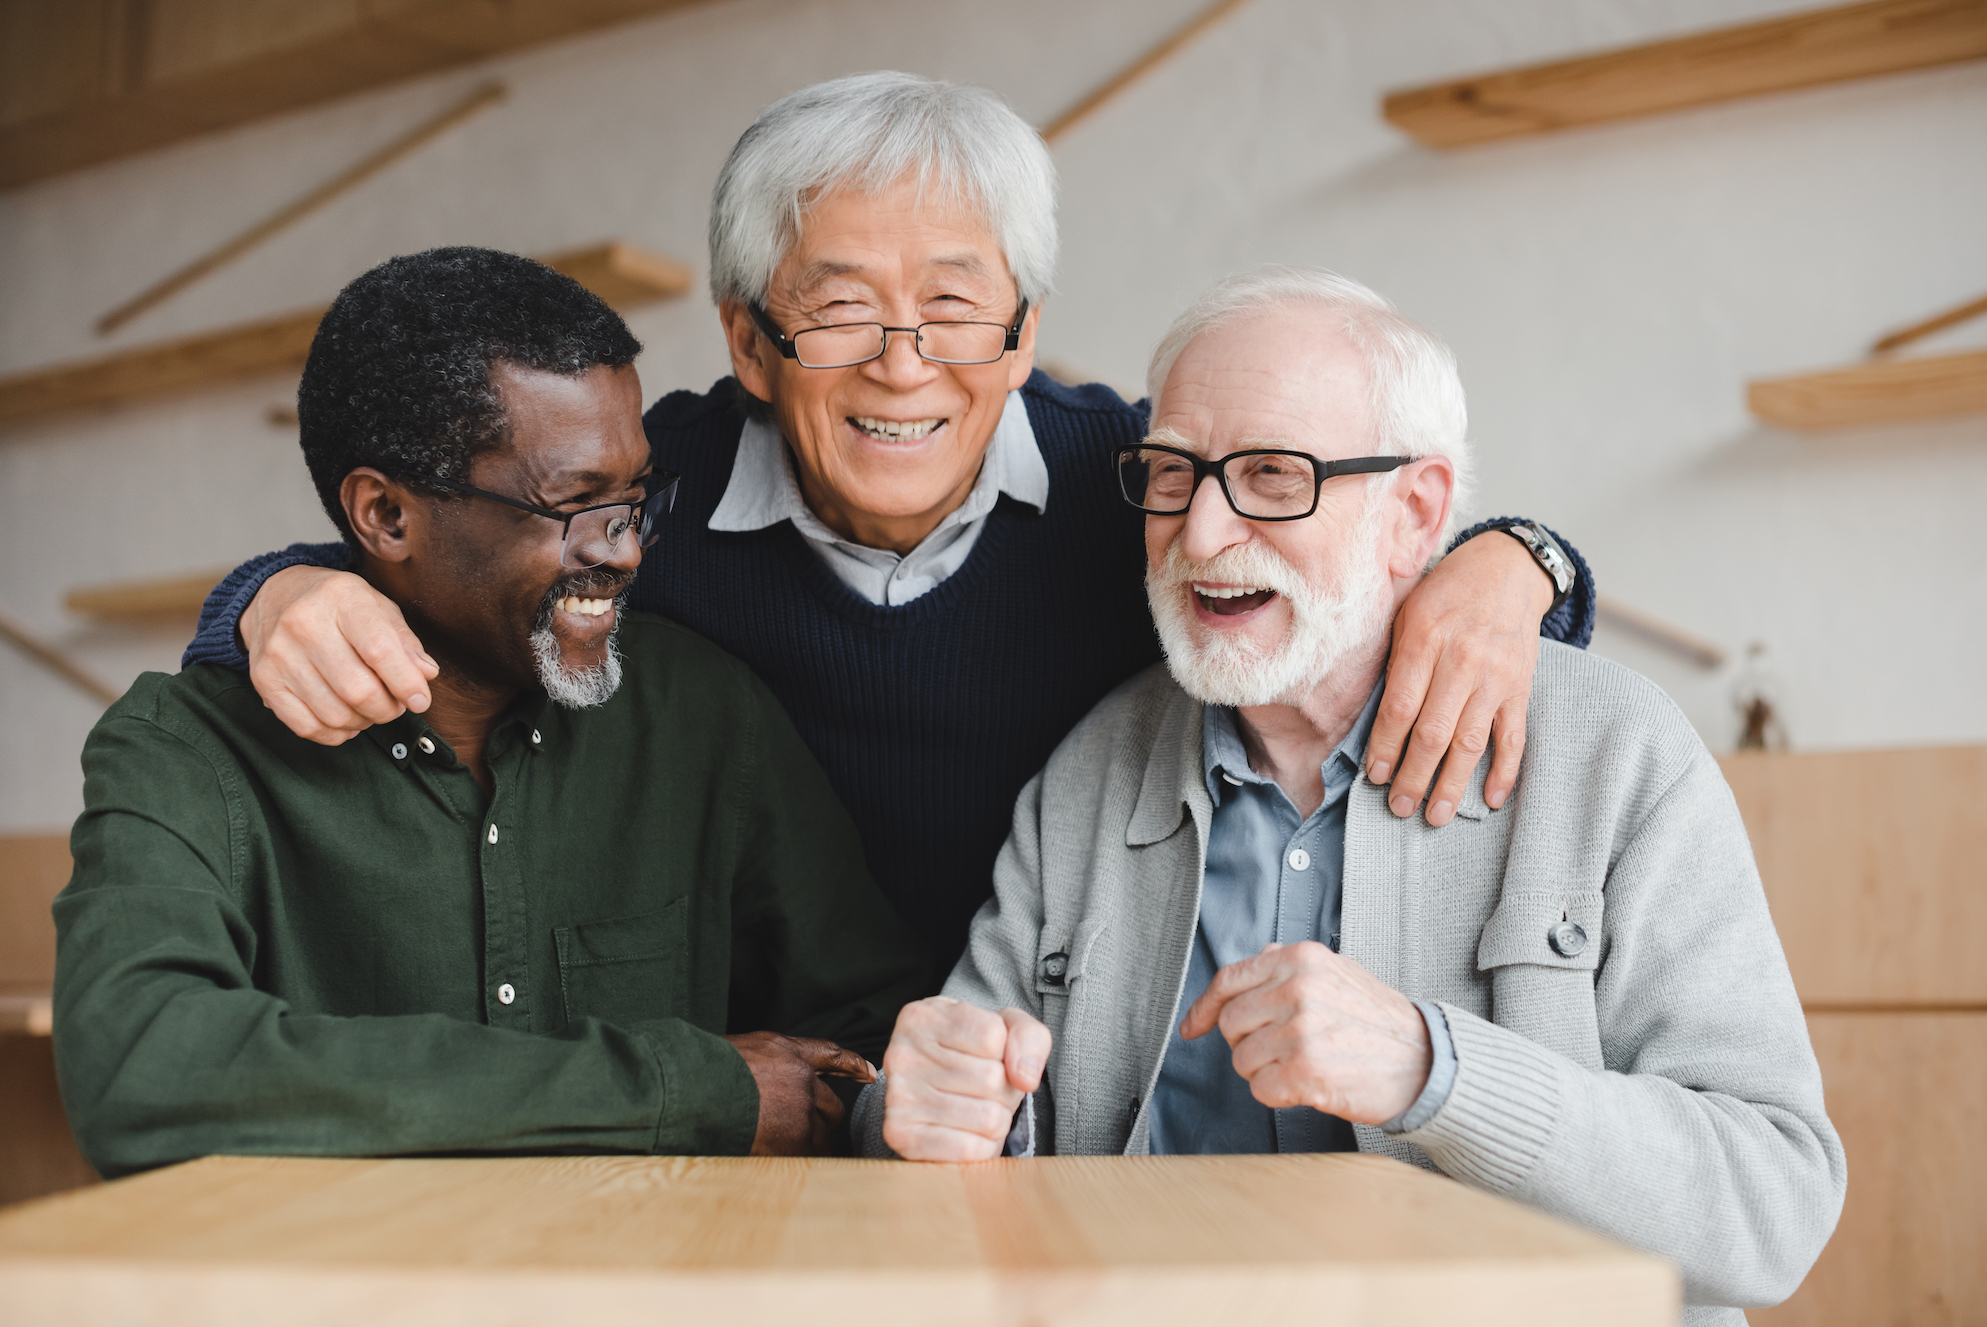 According to one of the longest studies of adult life ever conducted, the secret to happiness may come down to having positive relationships and a supportive social circle.